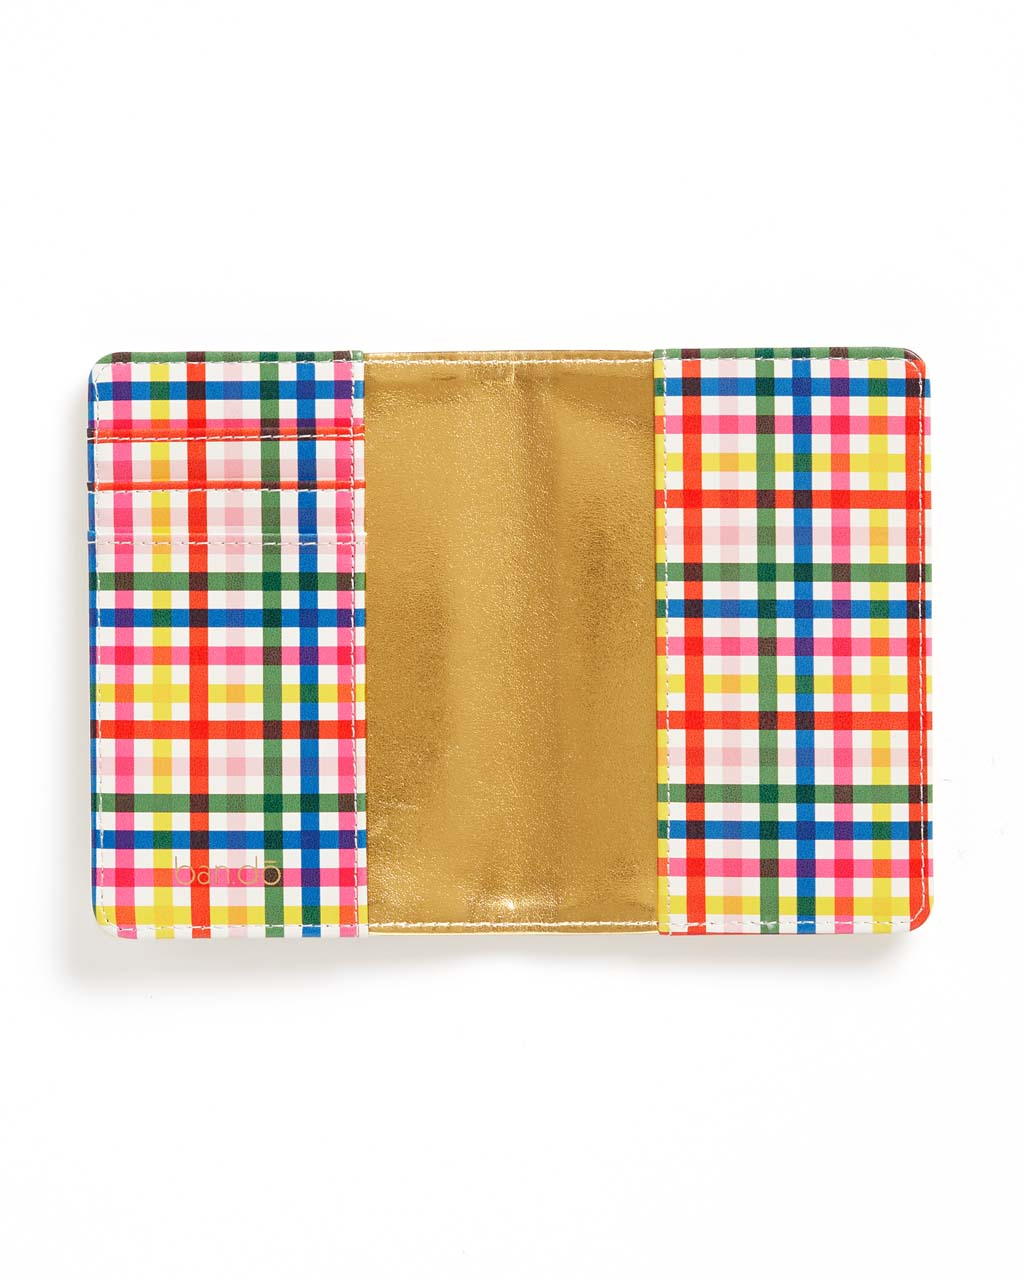 Features a rainbow plaid and shiny gold interior.